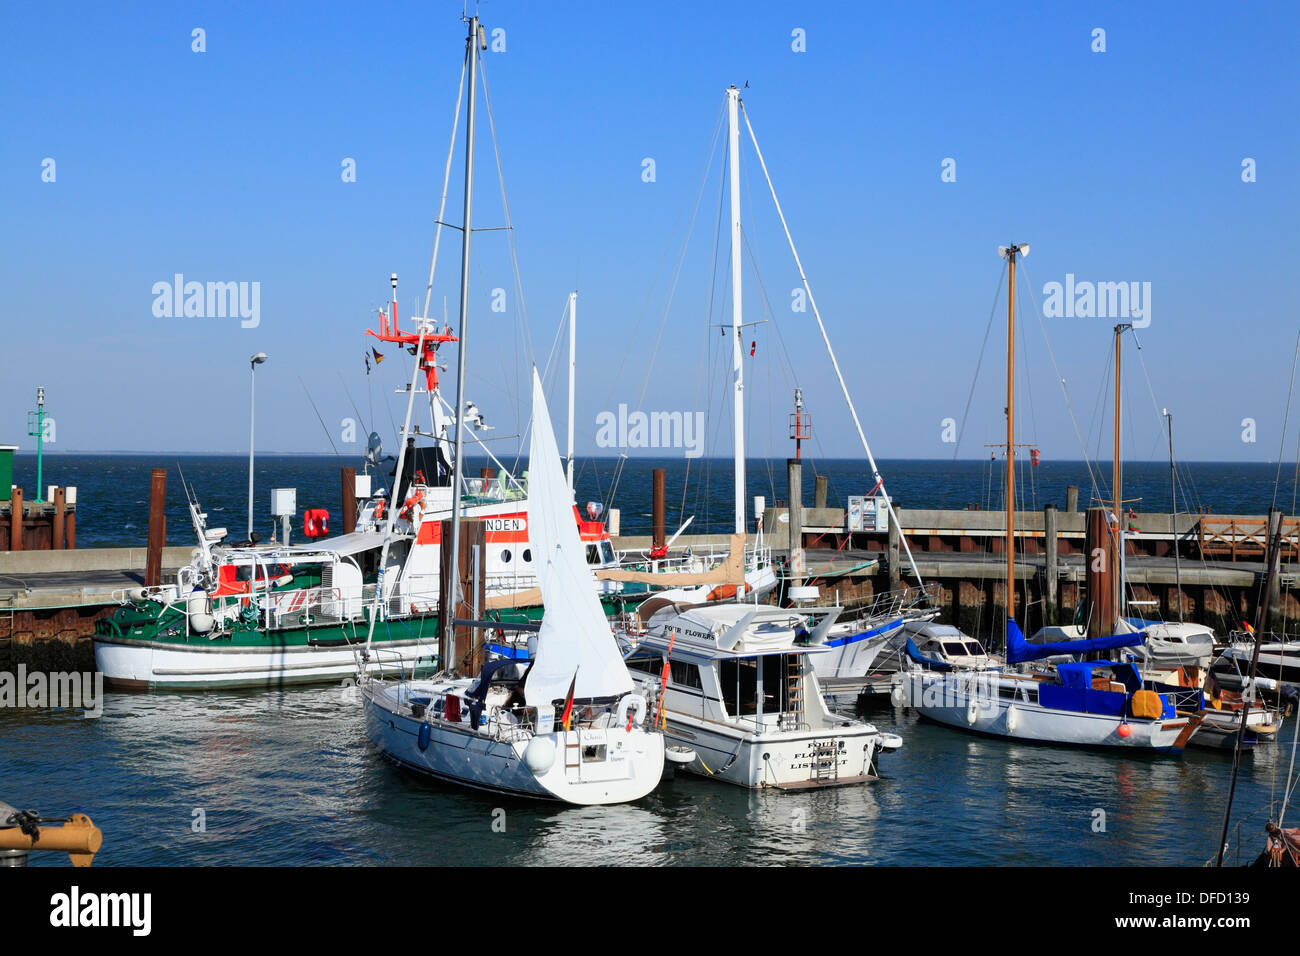 List harbour, Sylt Island, Schleswig-Holstein, Germany - Stock Image